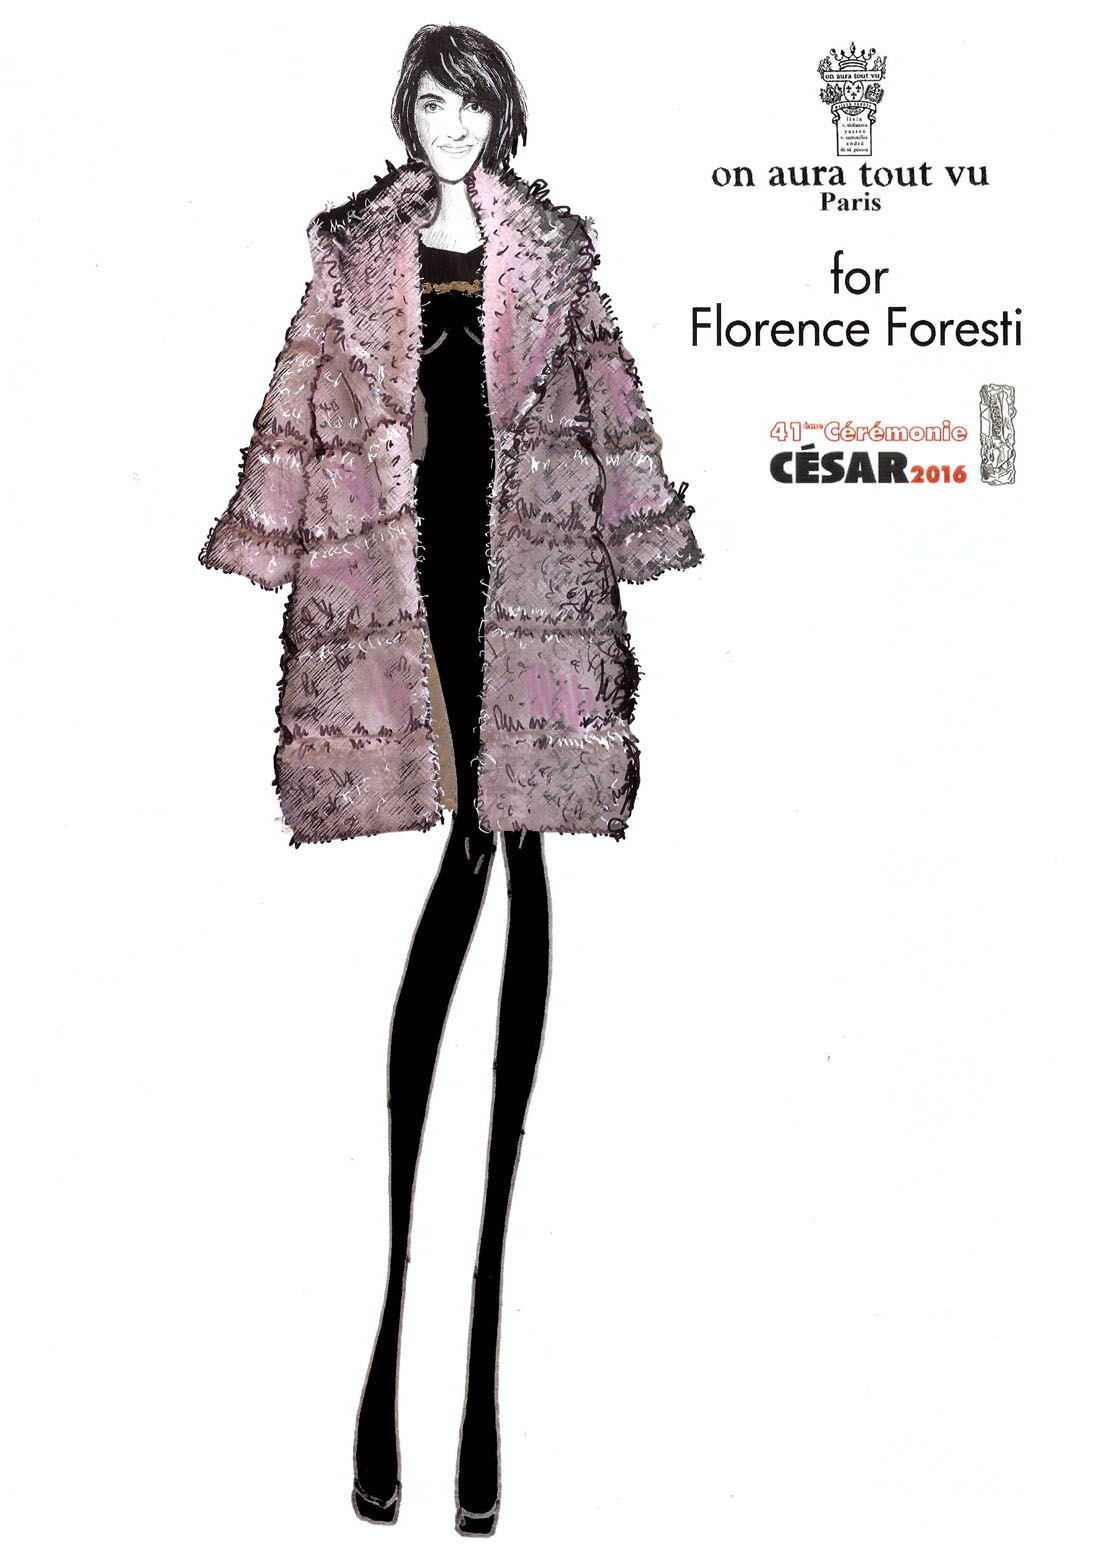 Florence Foresti on aura tout vu couture coat cesar2016